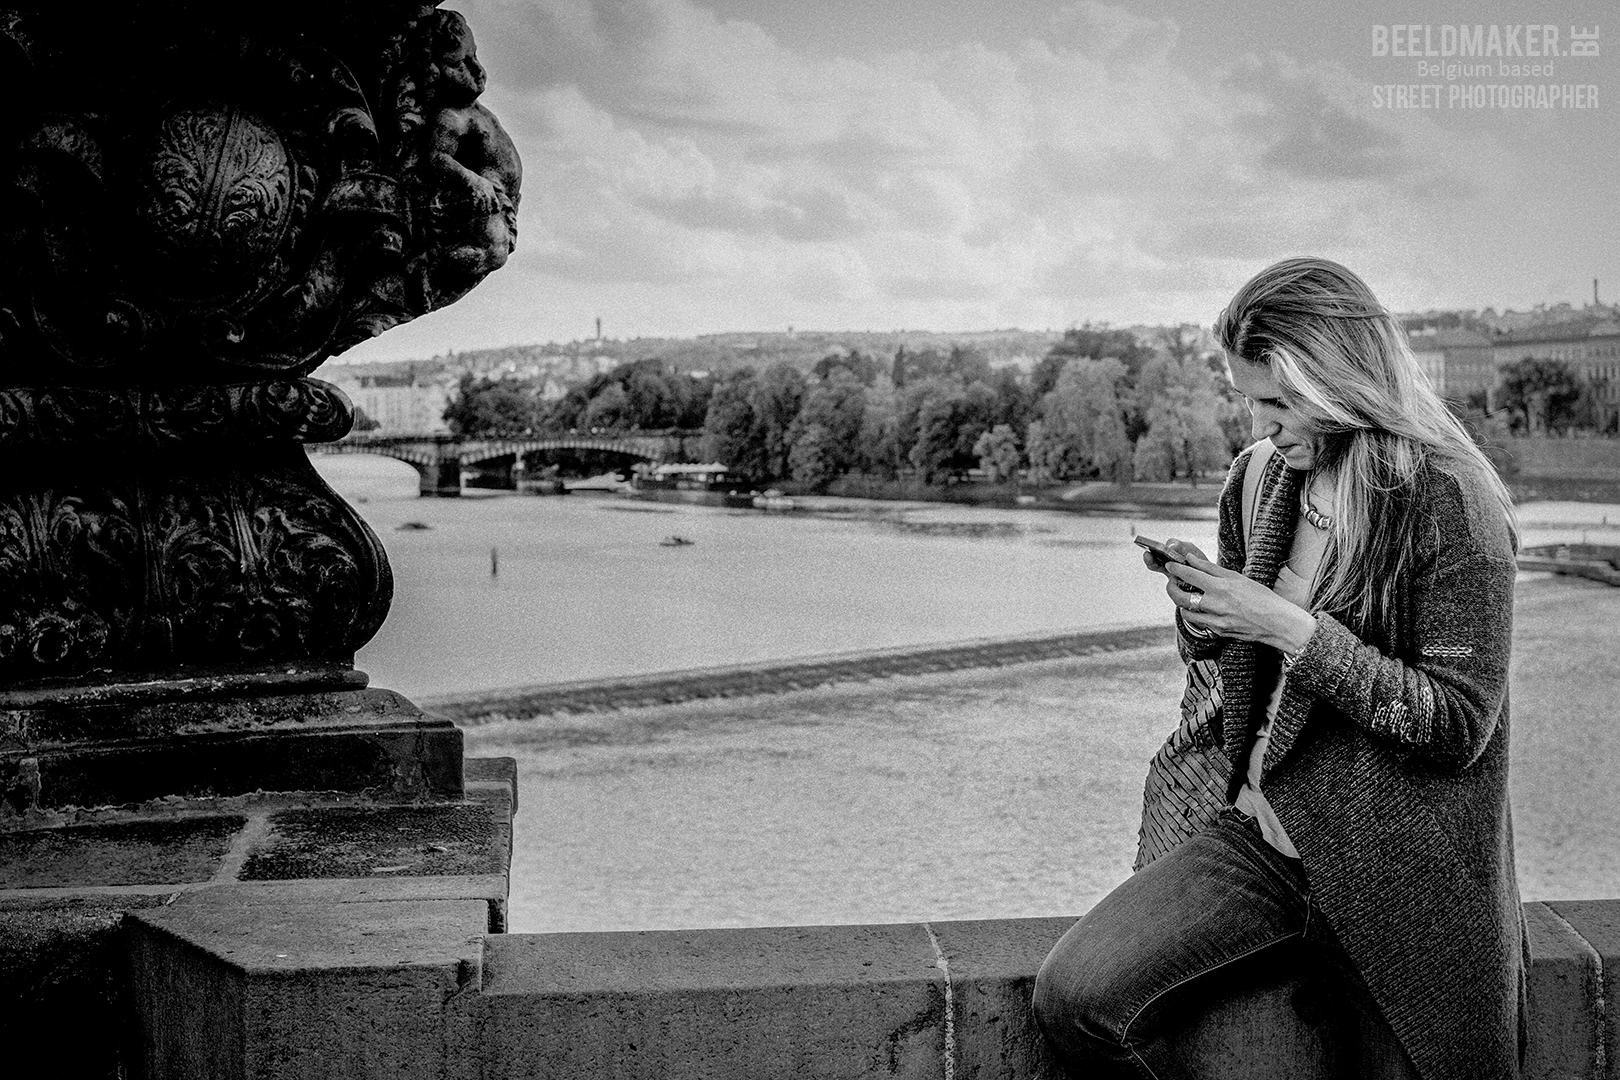 Prague -checking the message - © stefan migalski